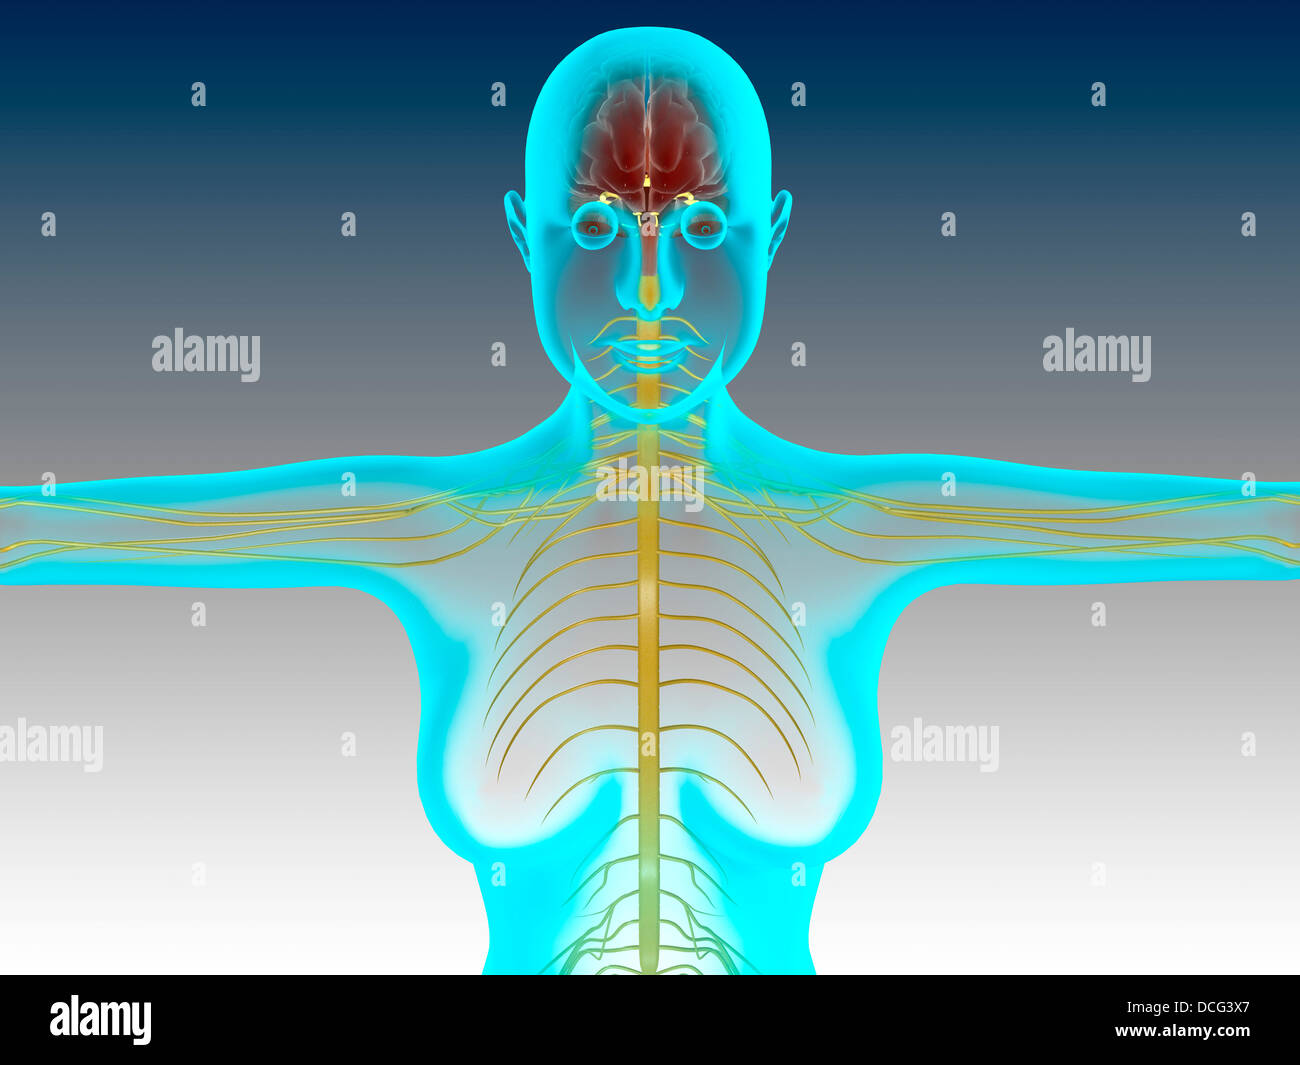 Conceptual image of female nervous system with brain. - Stock Image